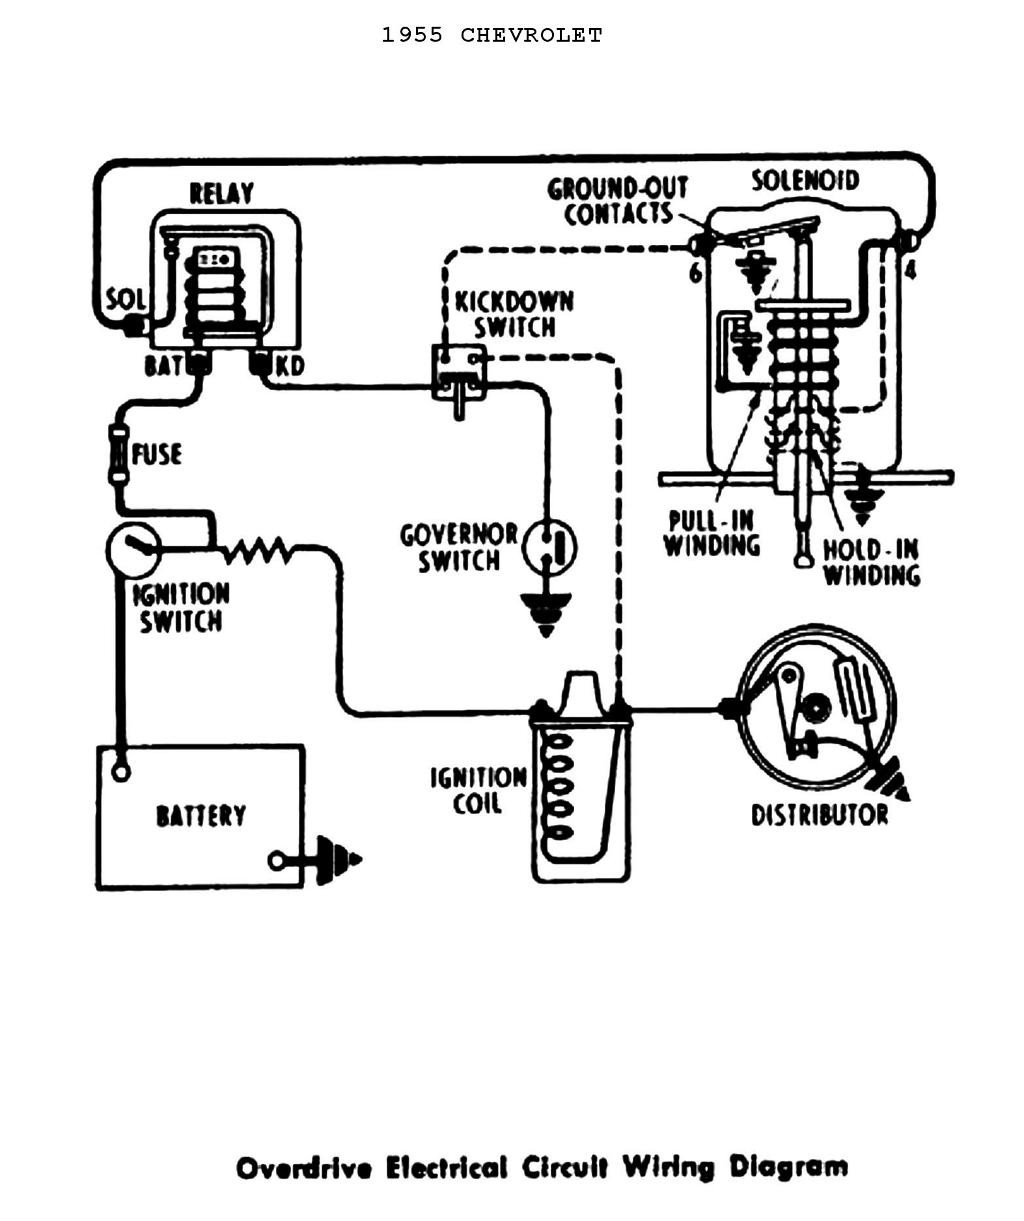 Ford 12 Volt Ignition Diagram Electrical Wiring Diagrams Golden Jubilee 12v Coil Trusted Module